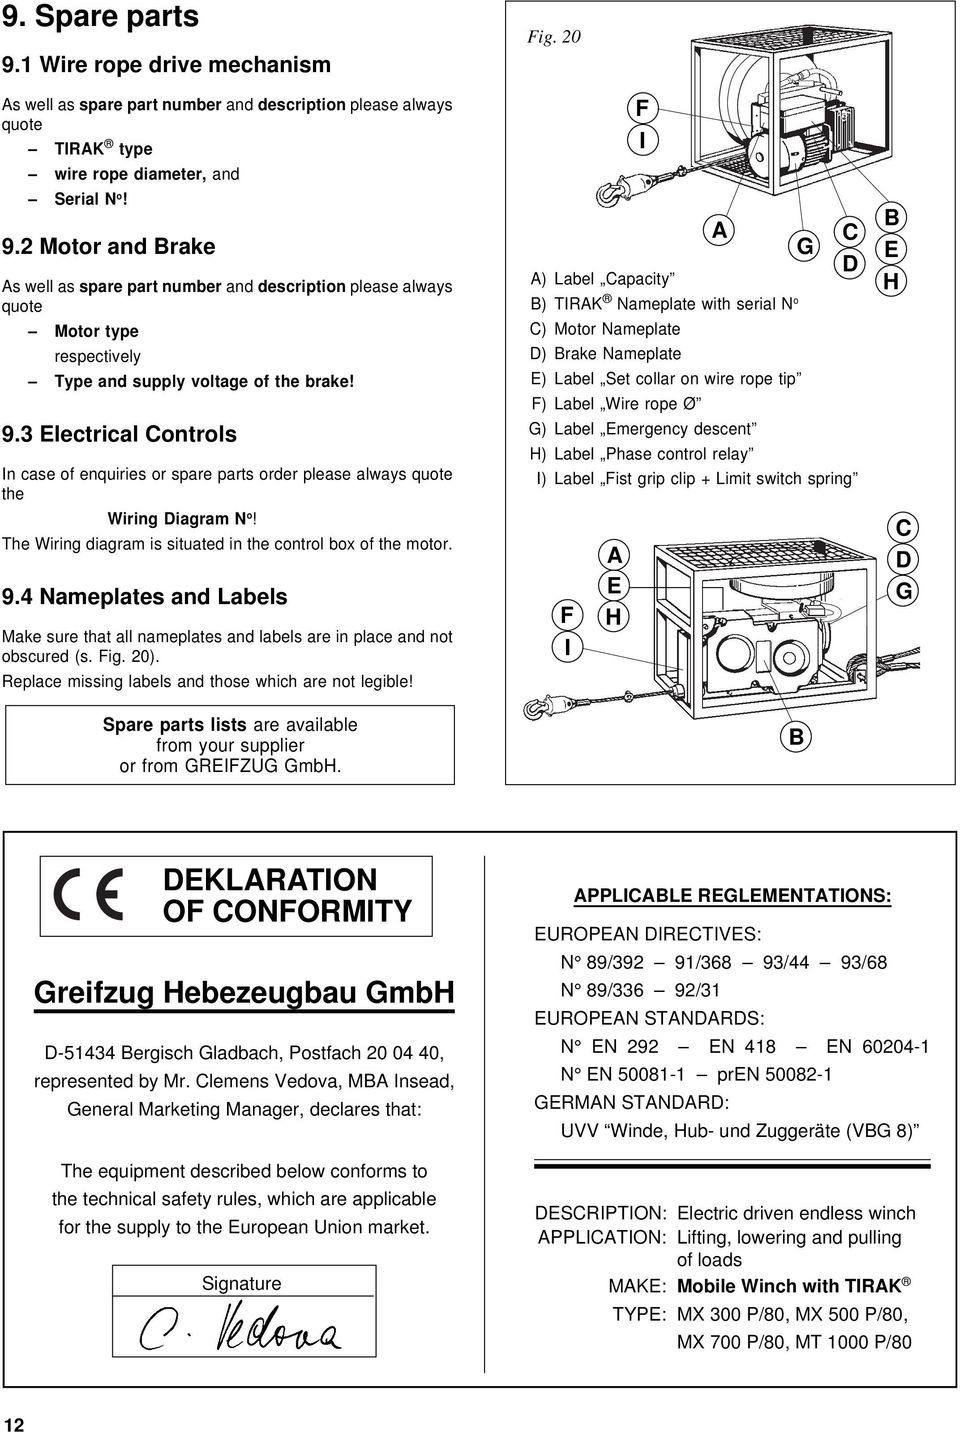 tirfor winch operating instructions